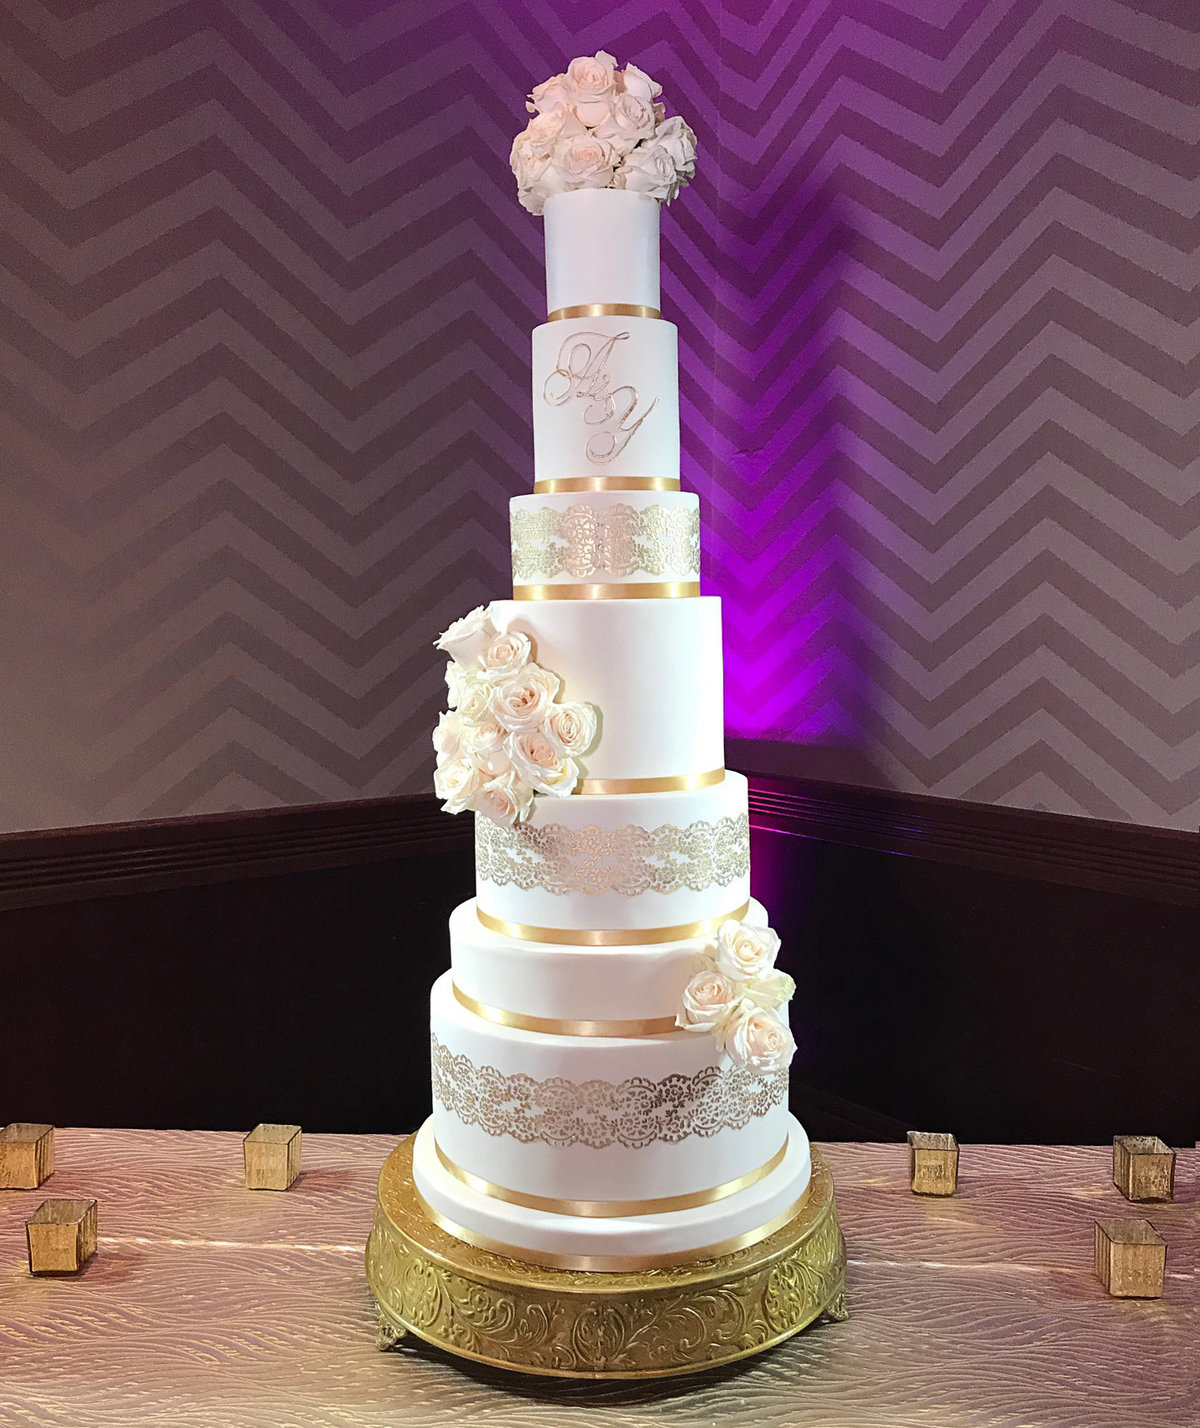 Whippt Desserts wedding cake June2017